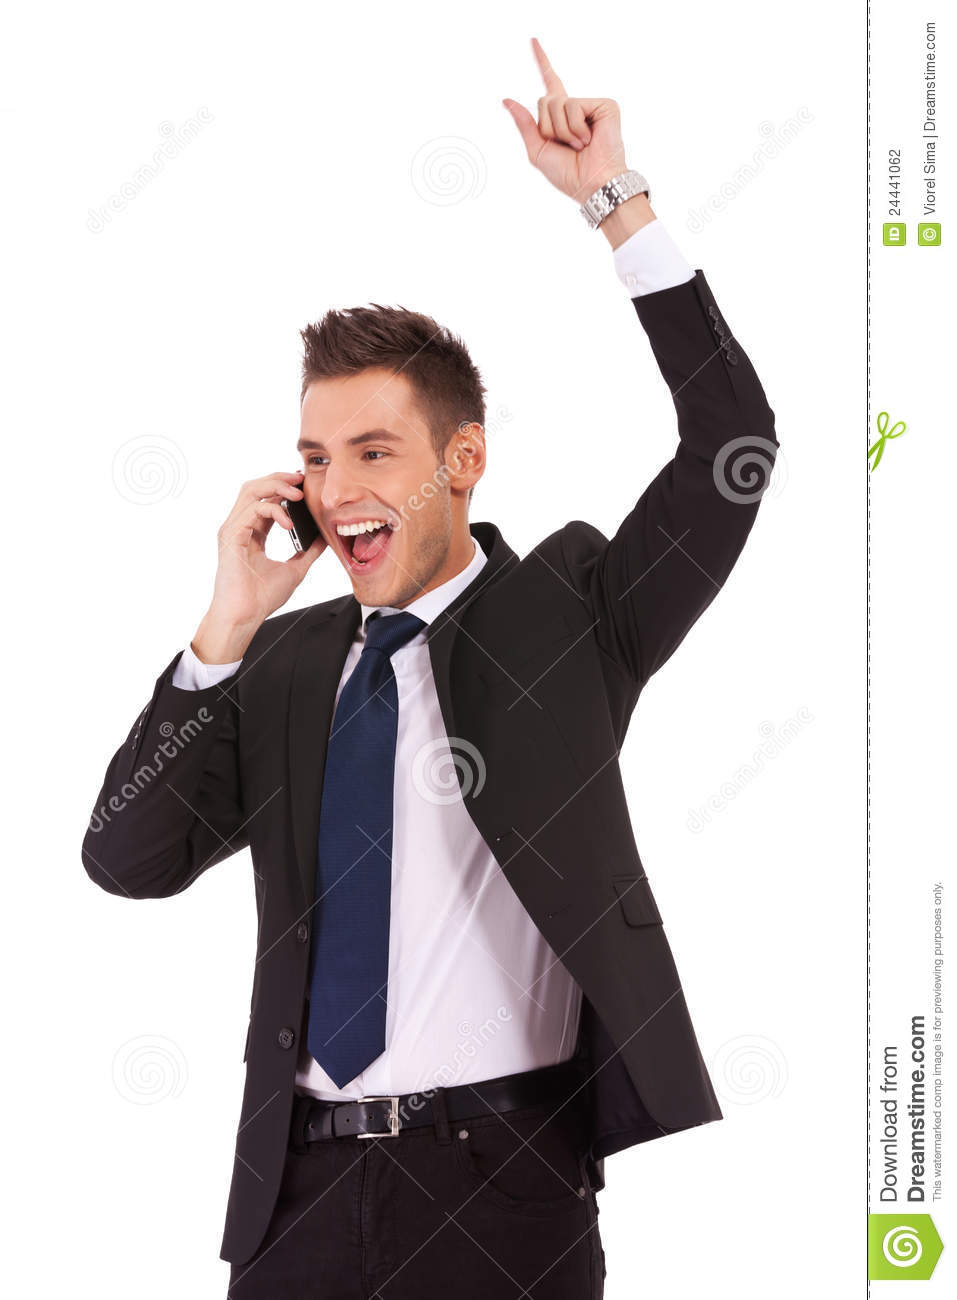 Winning business man on the phone